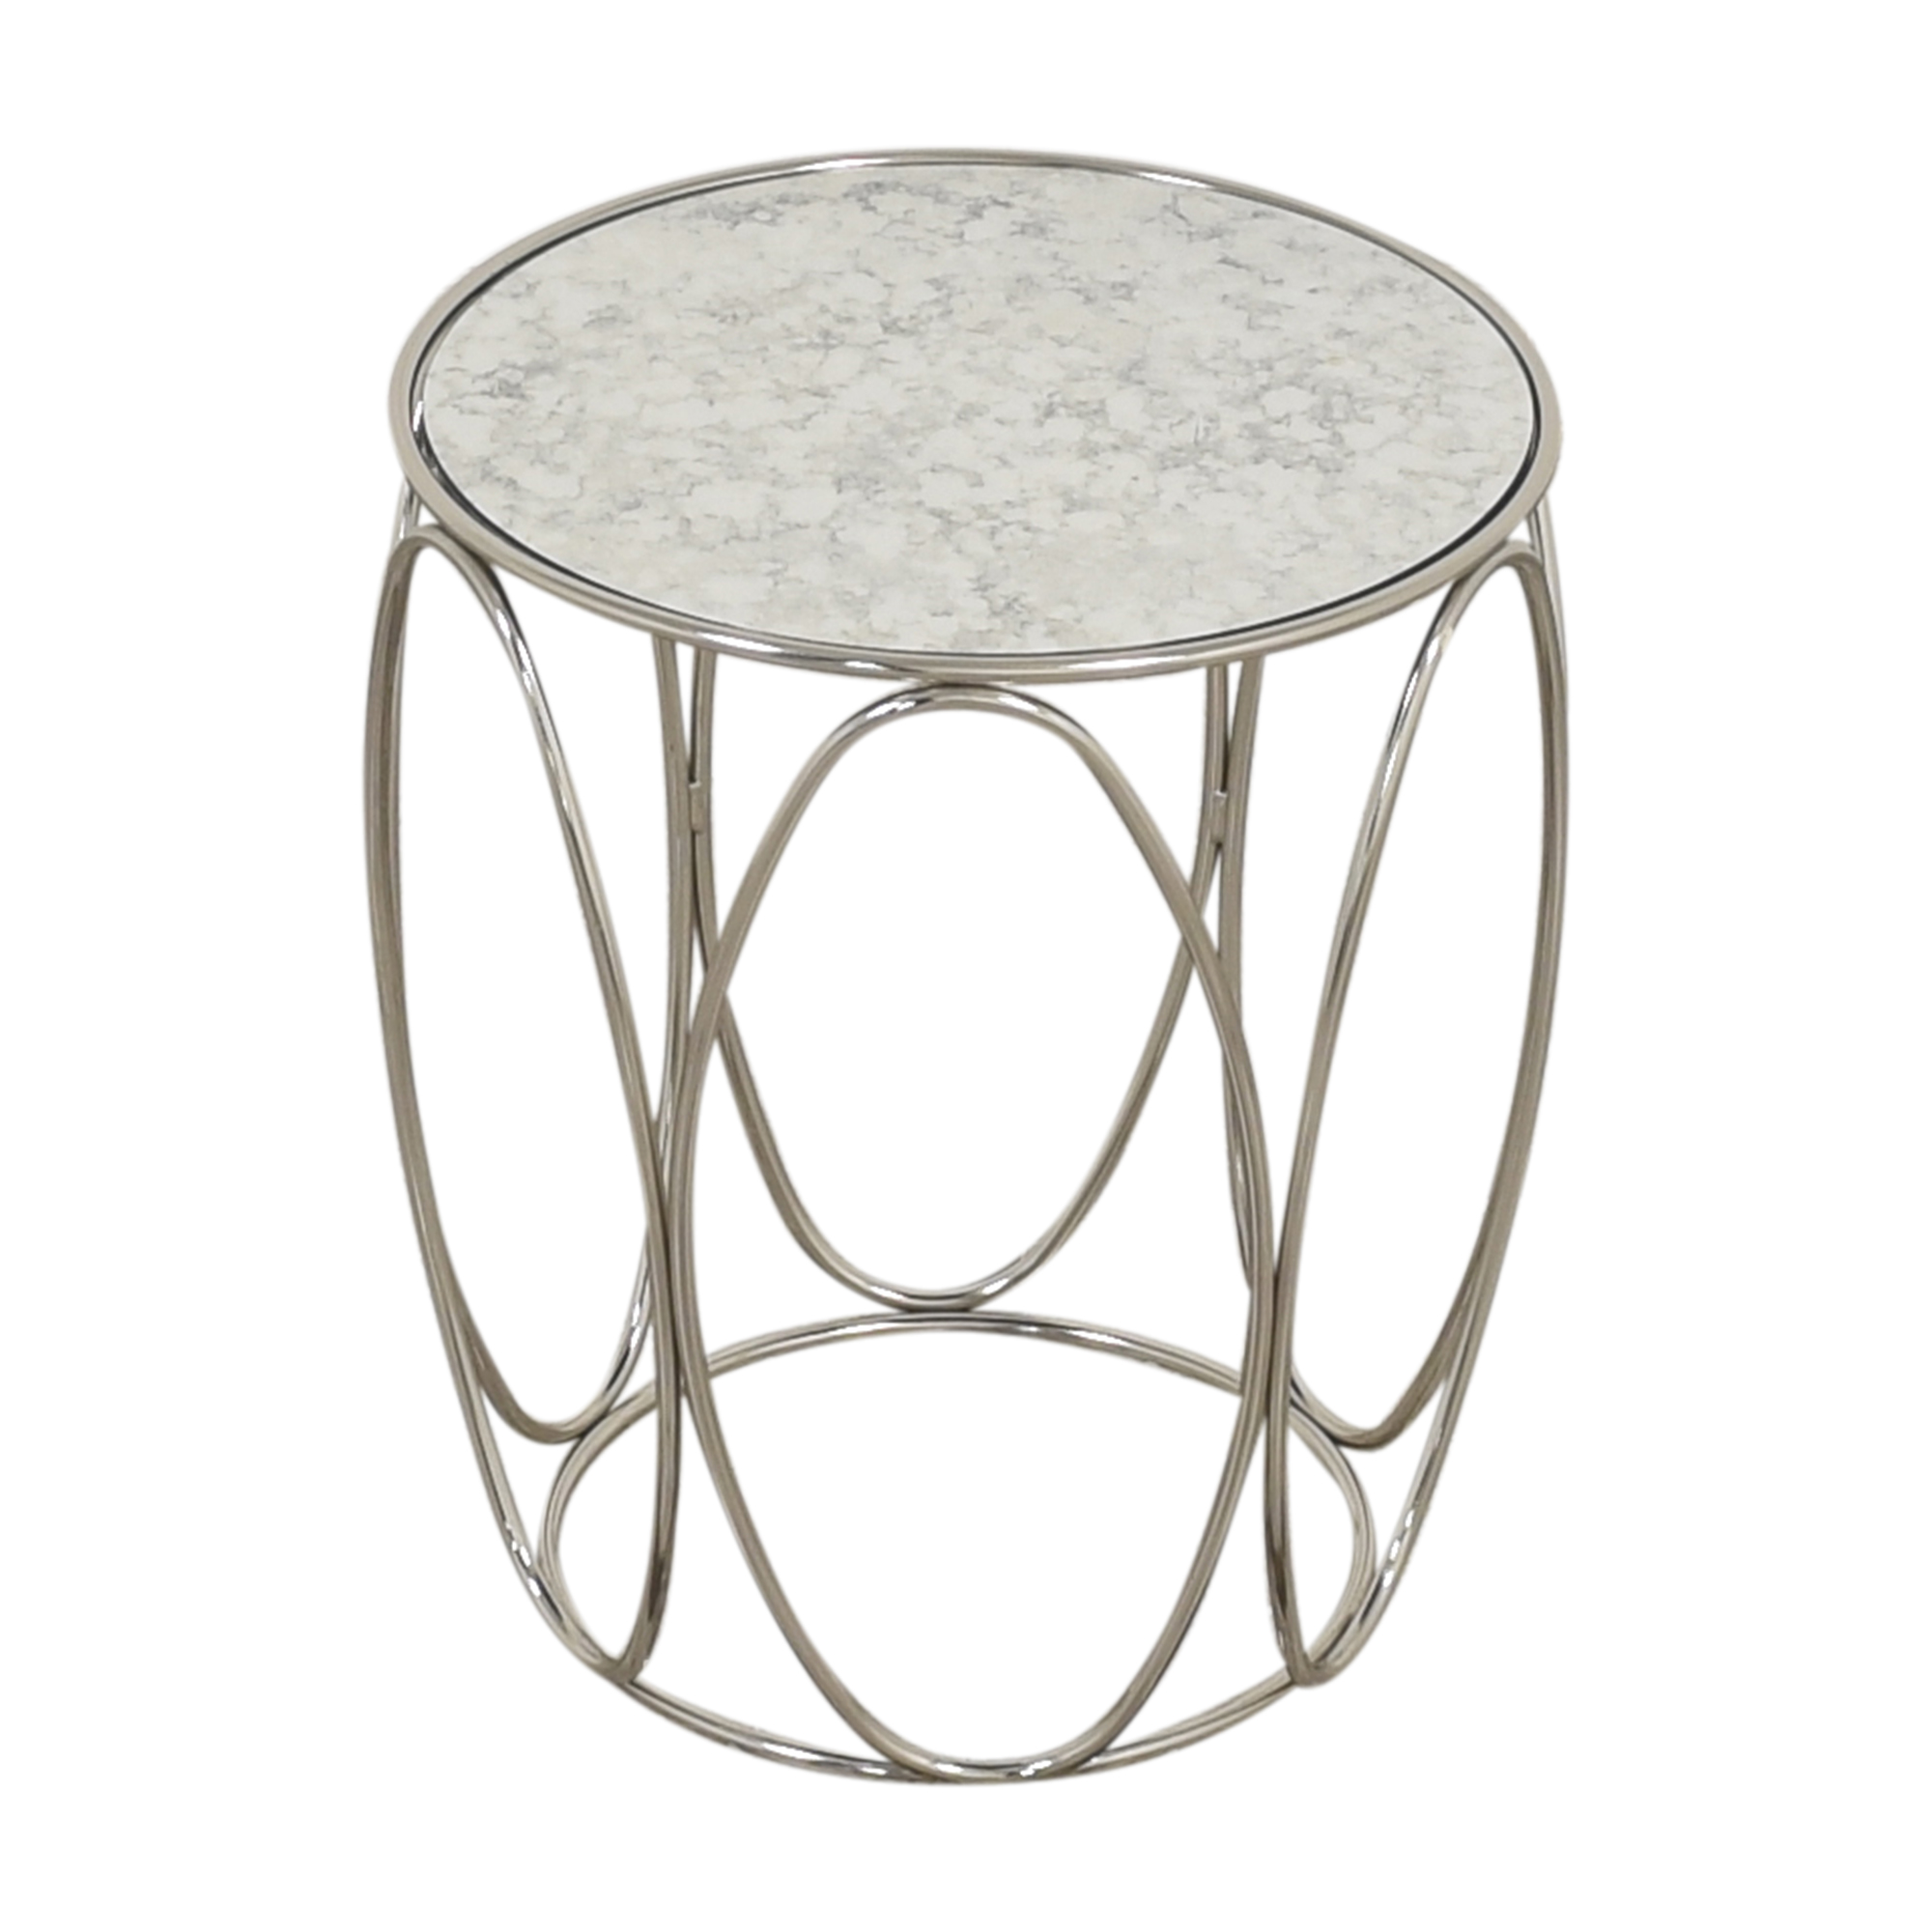 buy Crate & Barrel Modern Round End Table Crate & Barrel